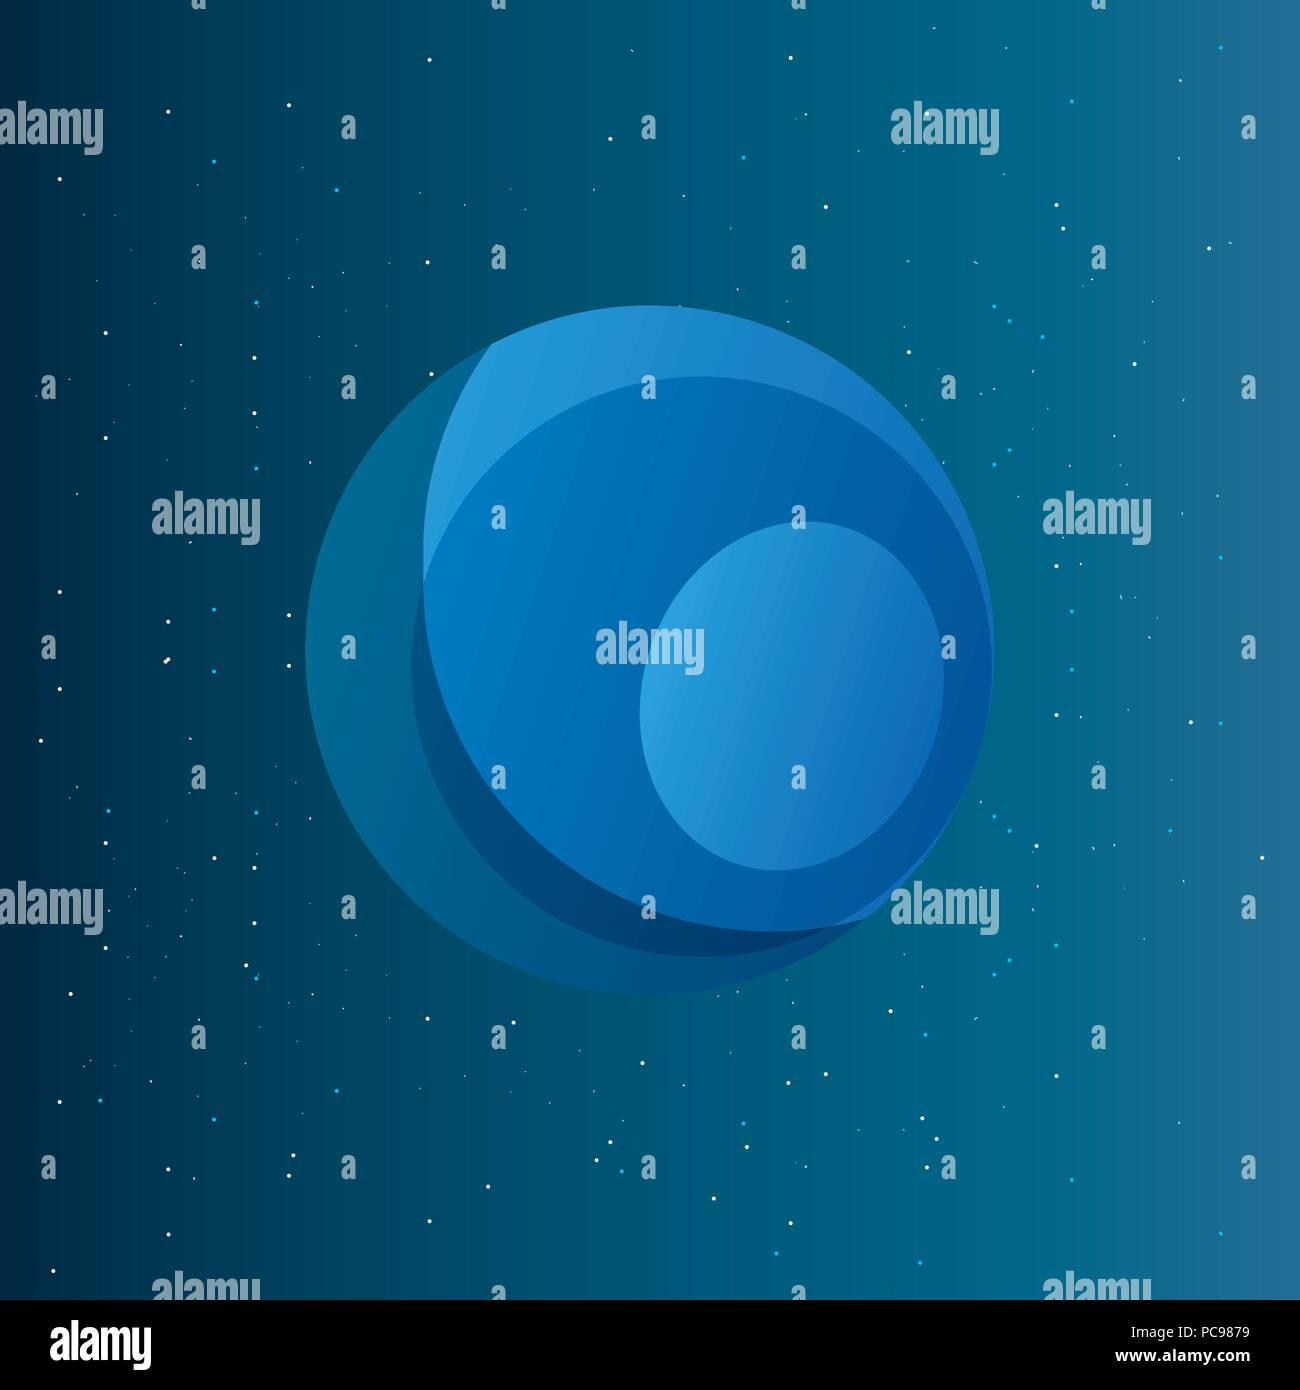 neptune planet over space background, colorful design. vector illustration - Stock Vector